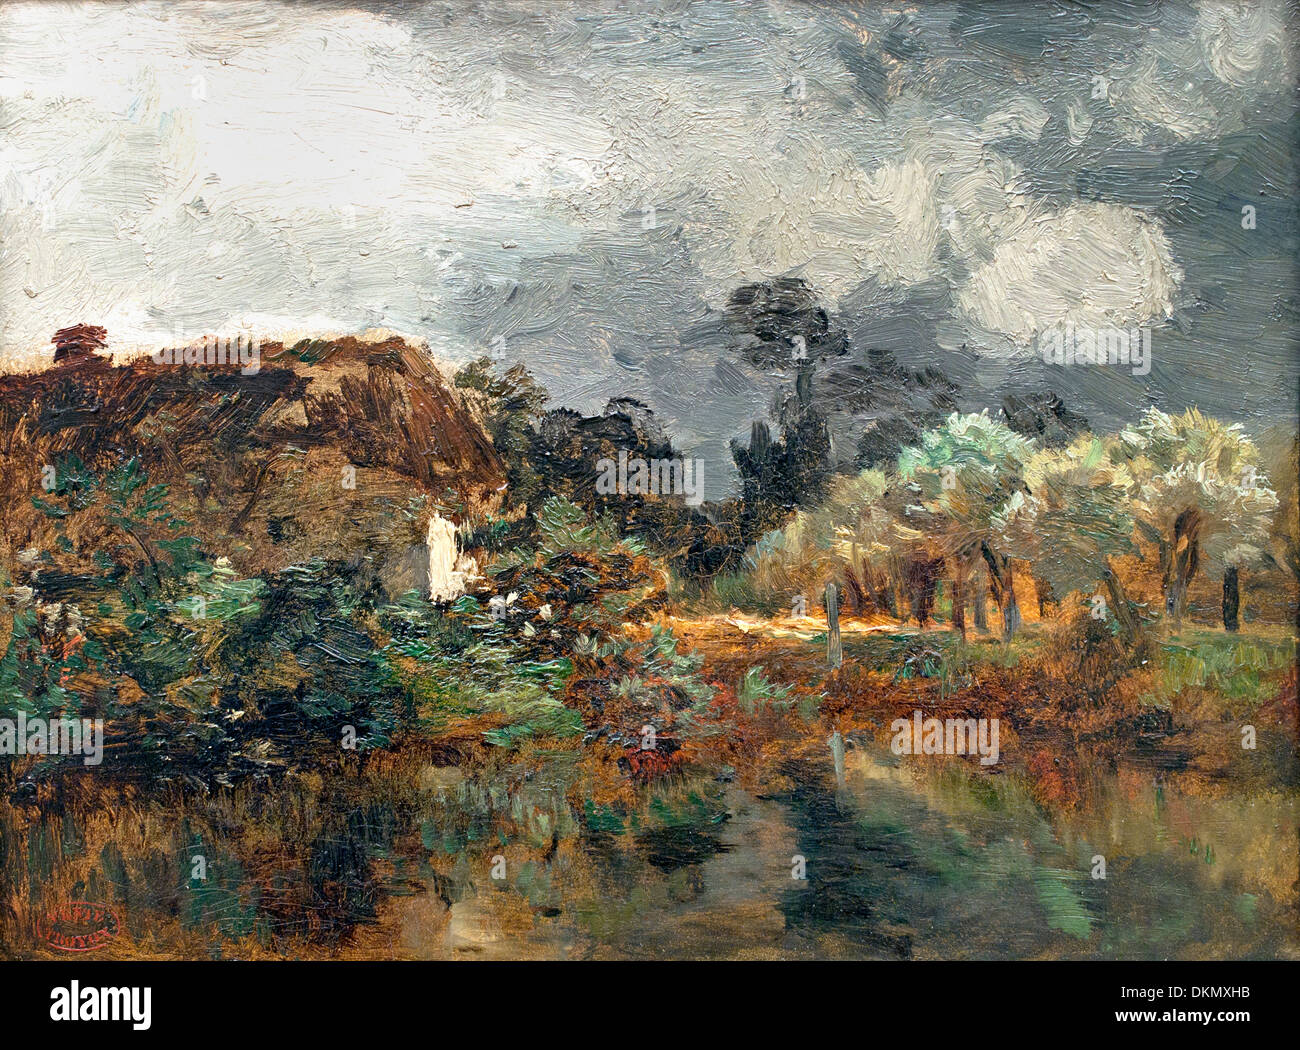 Landscape Study 1860 Constant Troyon 1810 - 1865 France French - Stock Image